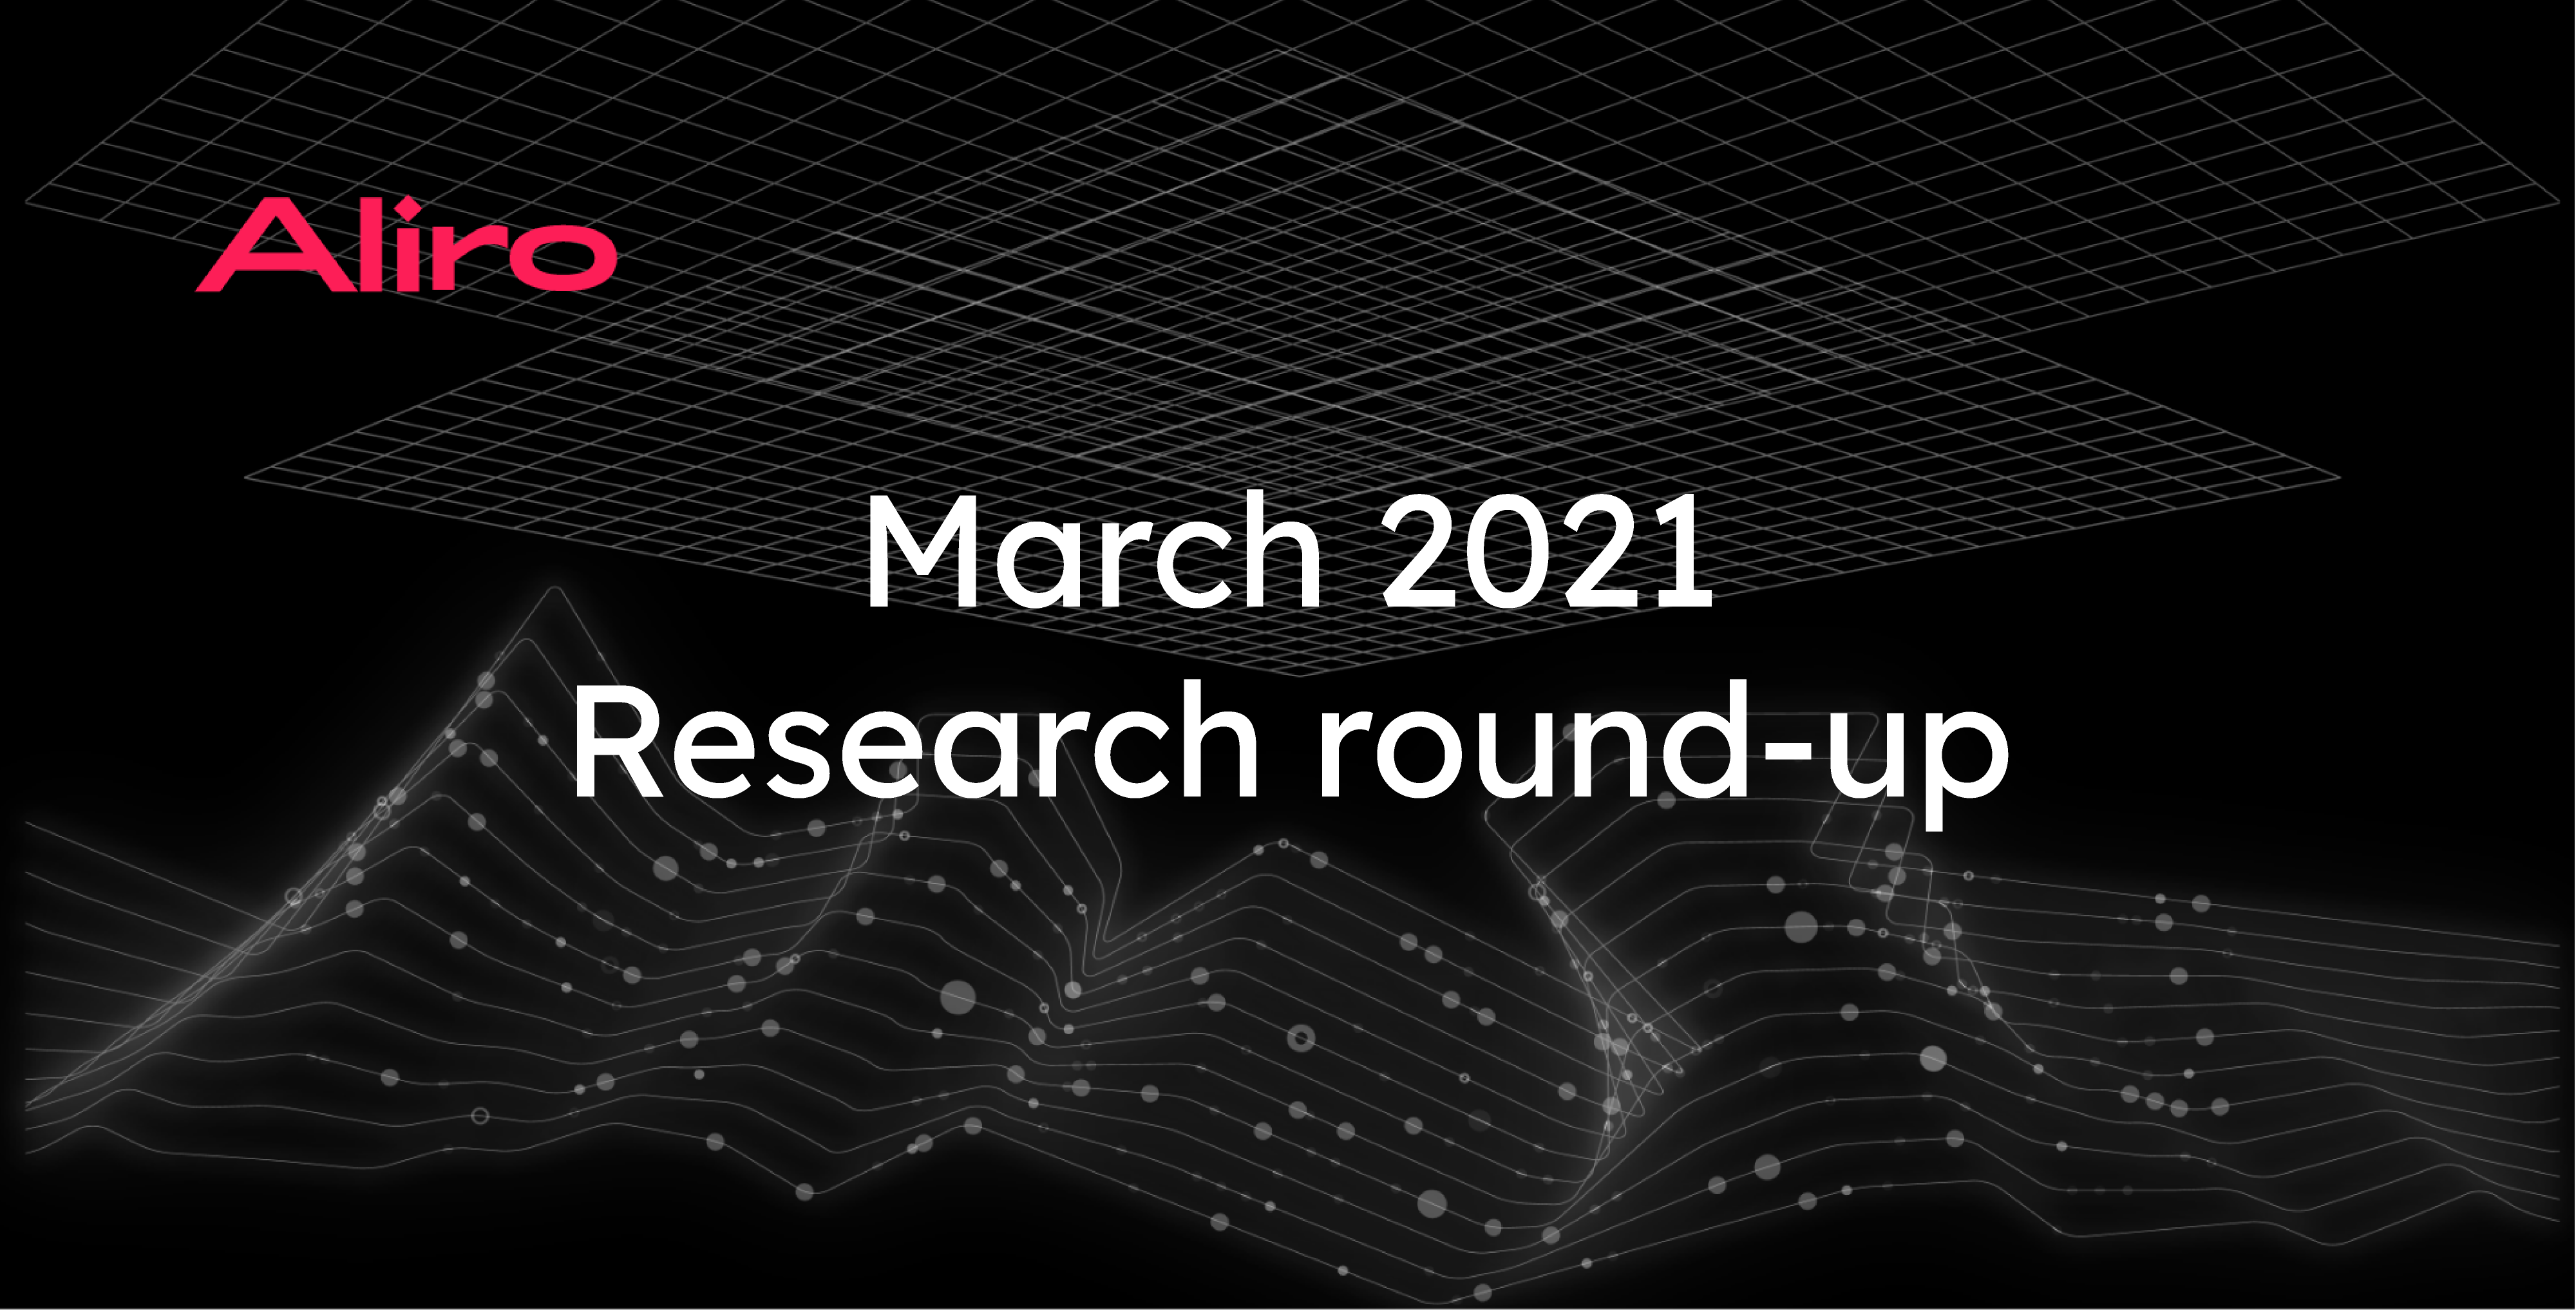 March 2021 research round-up